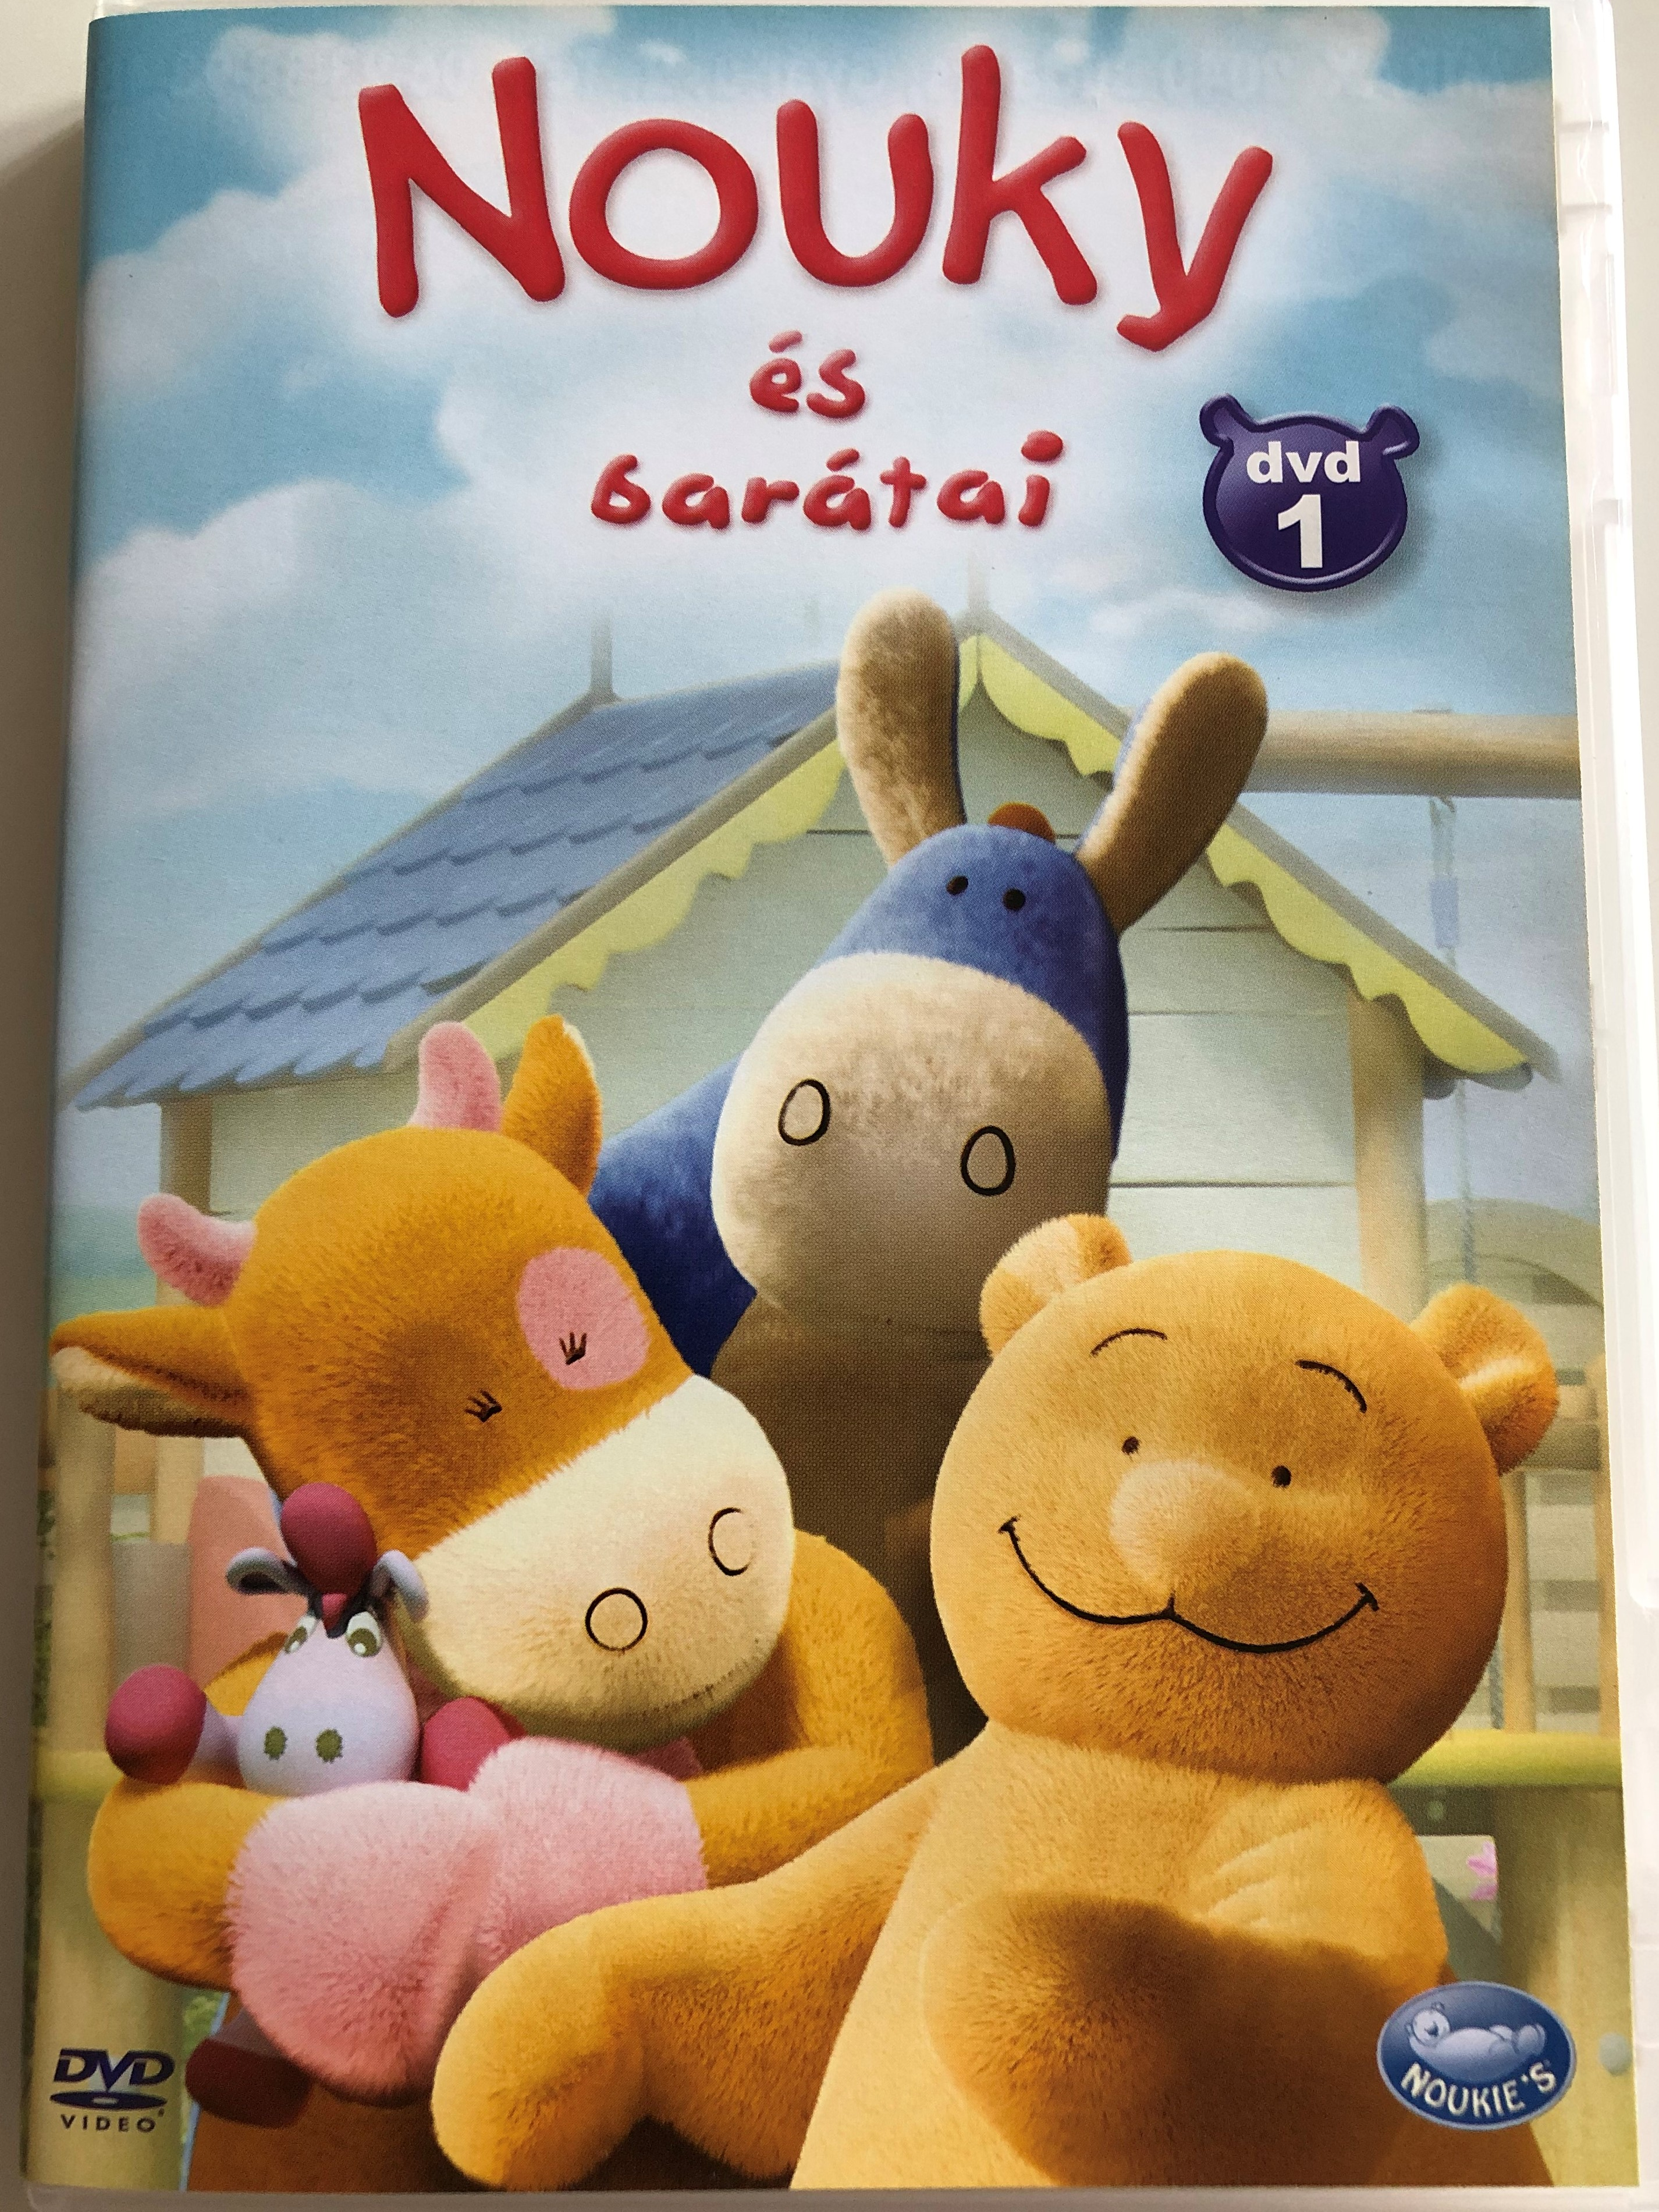 nouky-friends-dvd-2006-nouky-s-bar-tai-dvd-1-directed-by-st-phan-roelants-eric-jacquot-armelle-glorennec-belgian-cartoon-series-13-episodes-1-.jpg